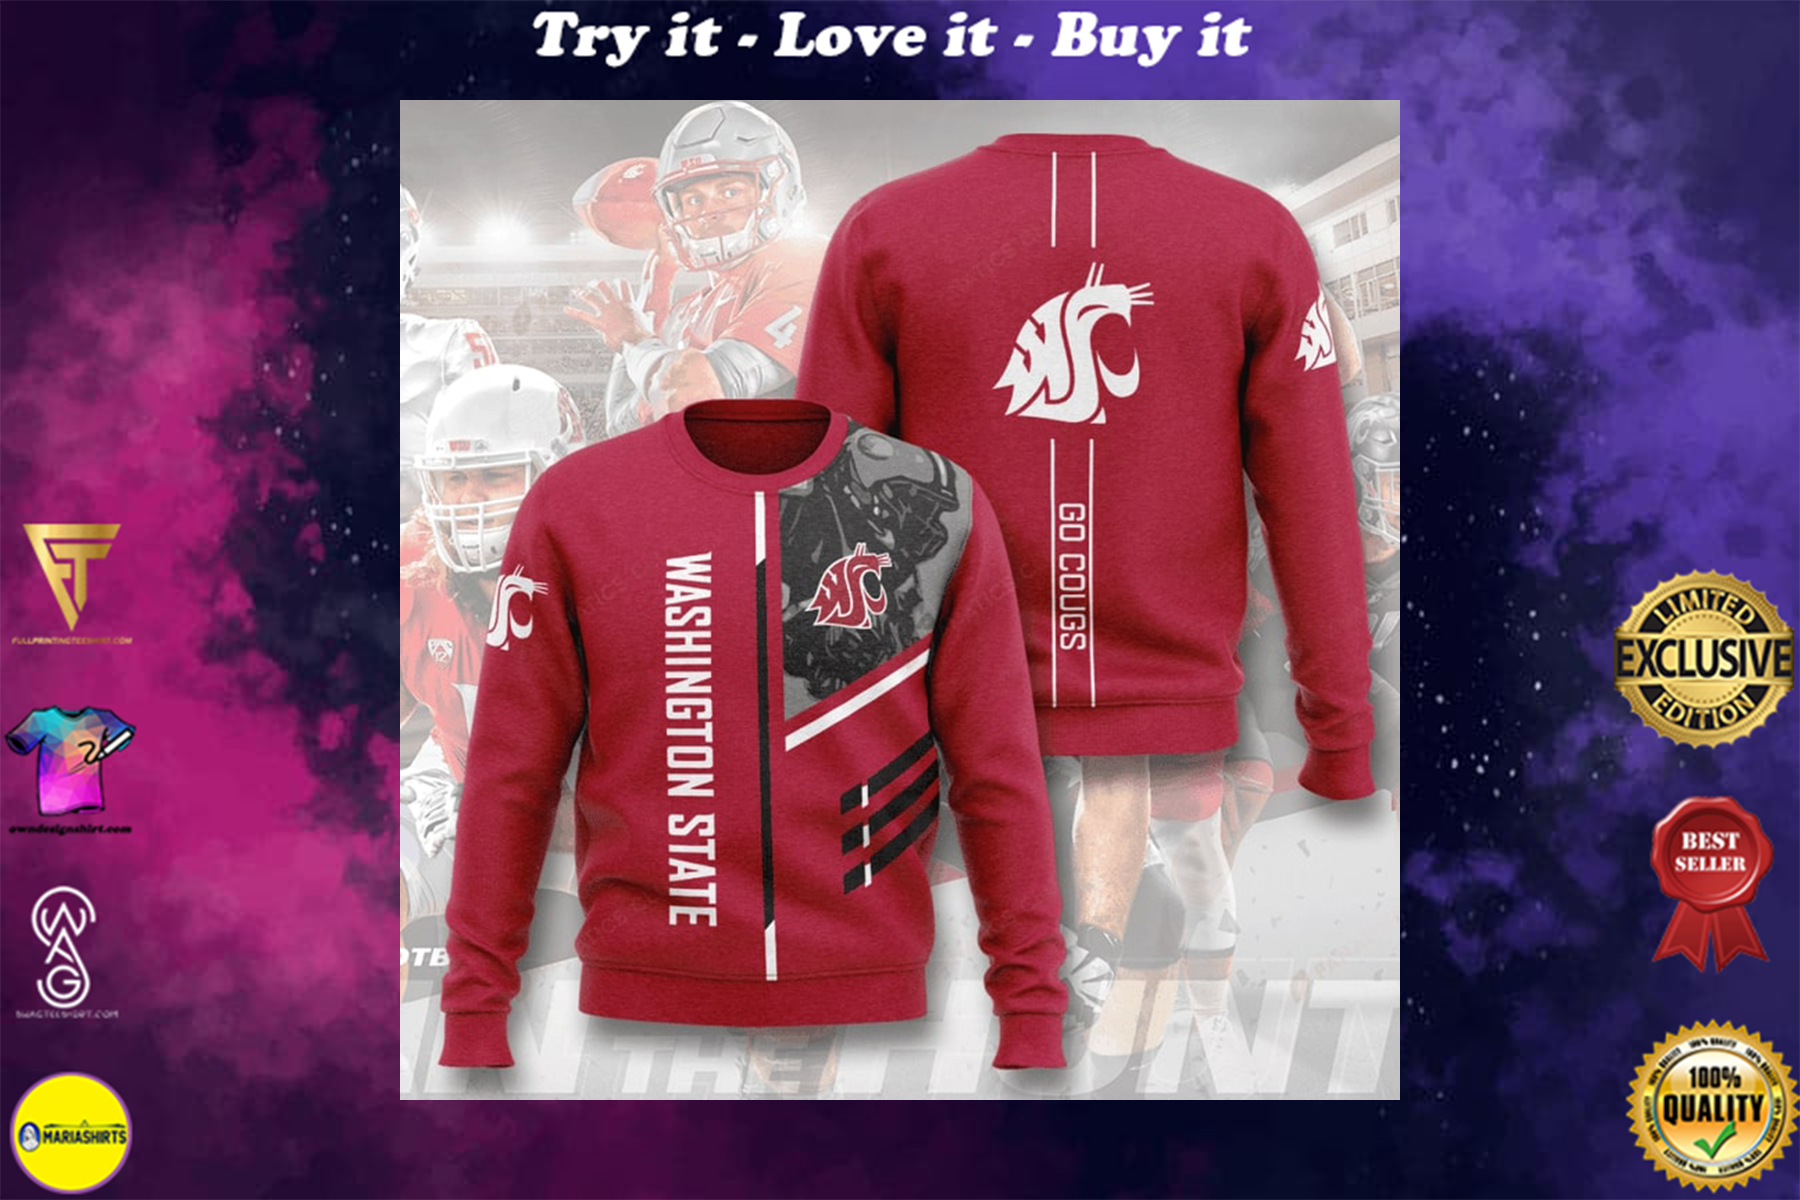 [special edition] washington state cougars football go cougs full printing ugly sweater - maria